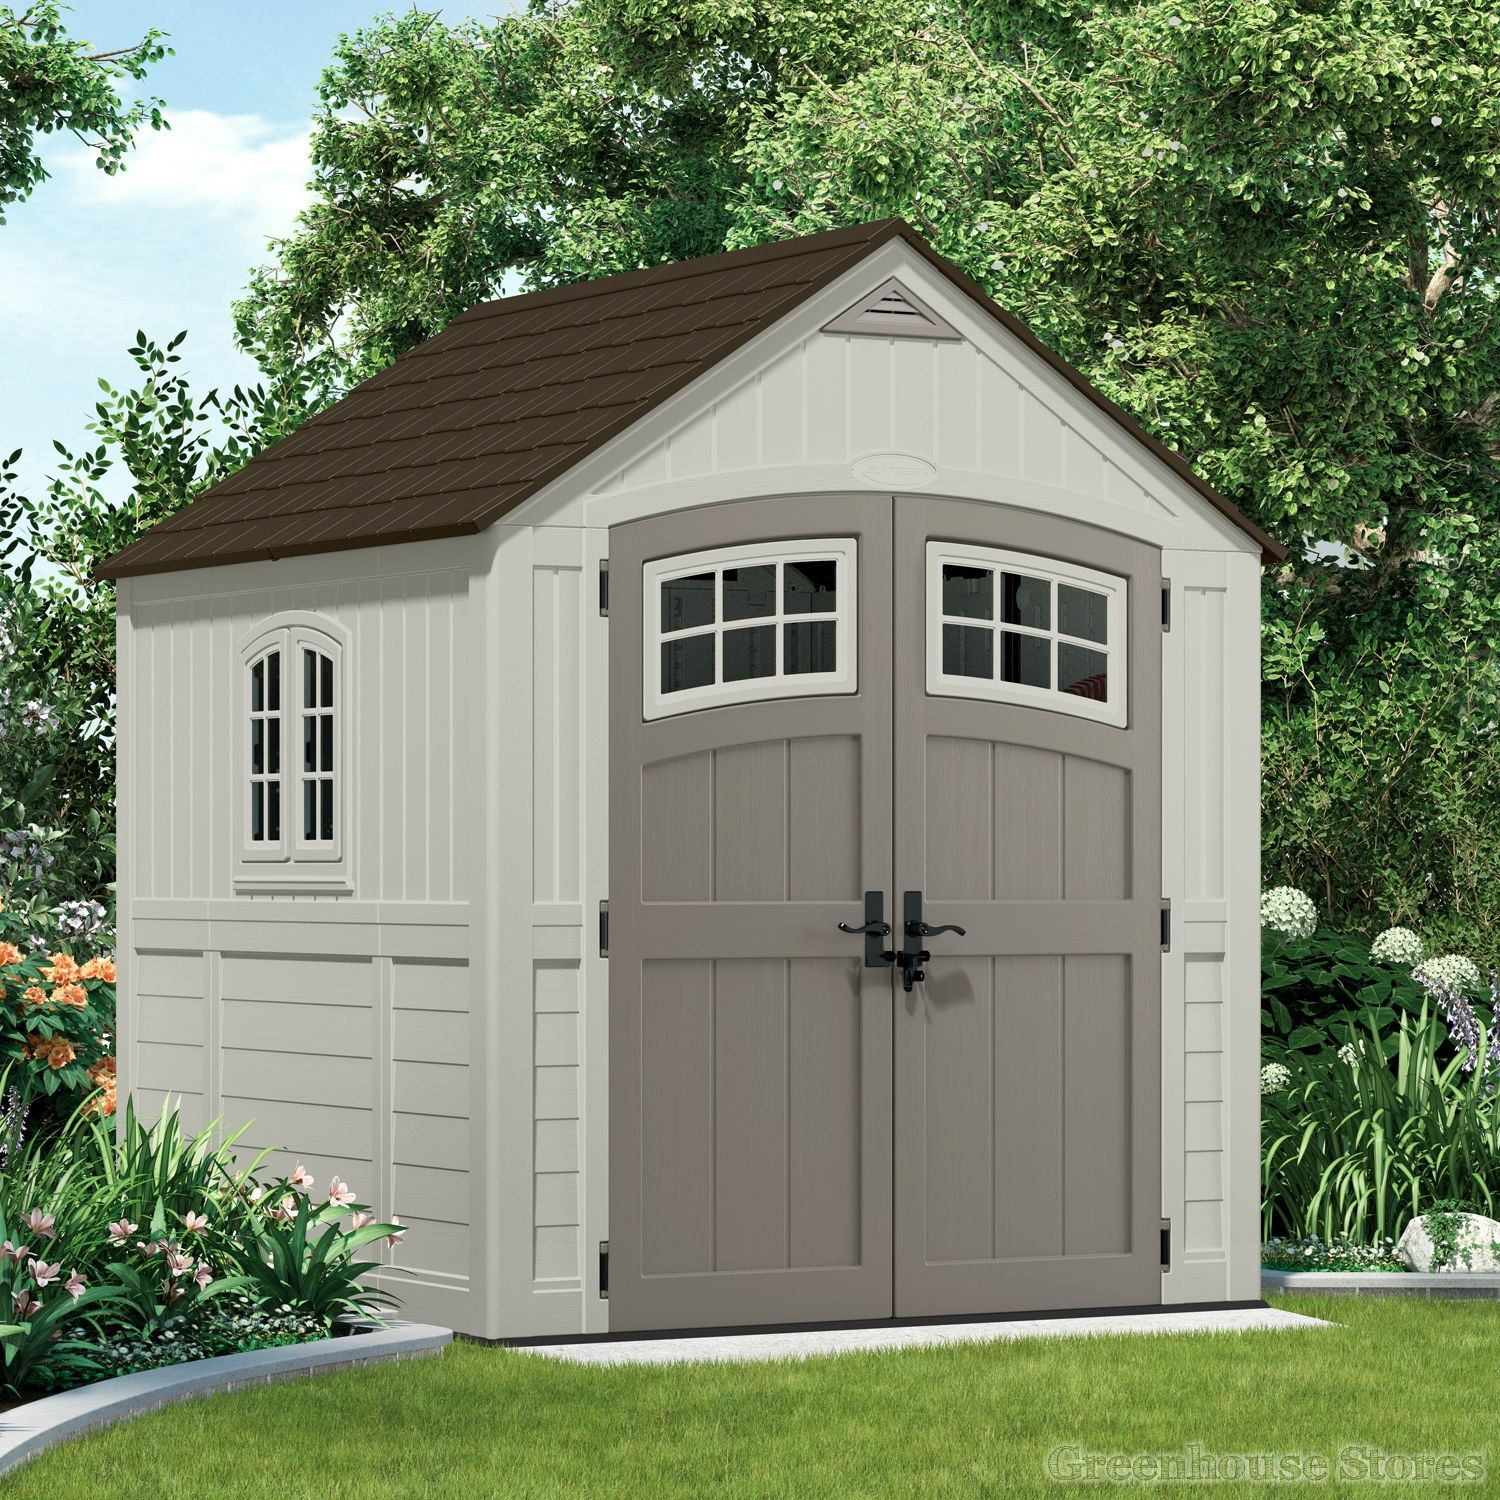 Suncast 7x7 Cascade One Plastic Shed. Plastic ShedsGarden EquipmentGarden  ShedsShed HomesHome DepotStorage ...